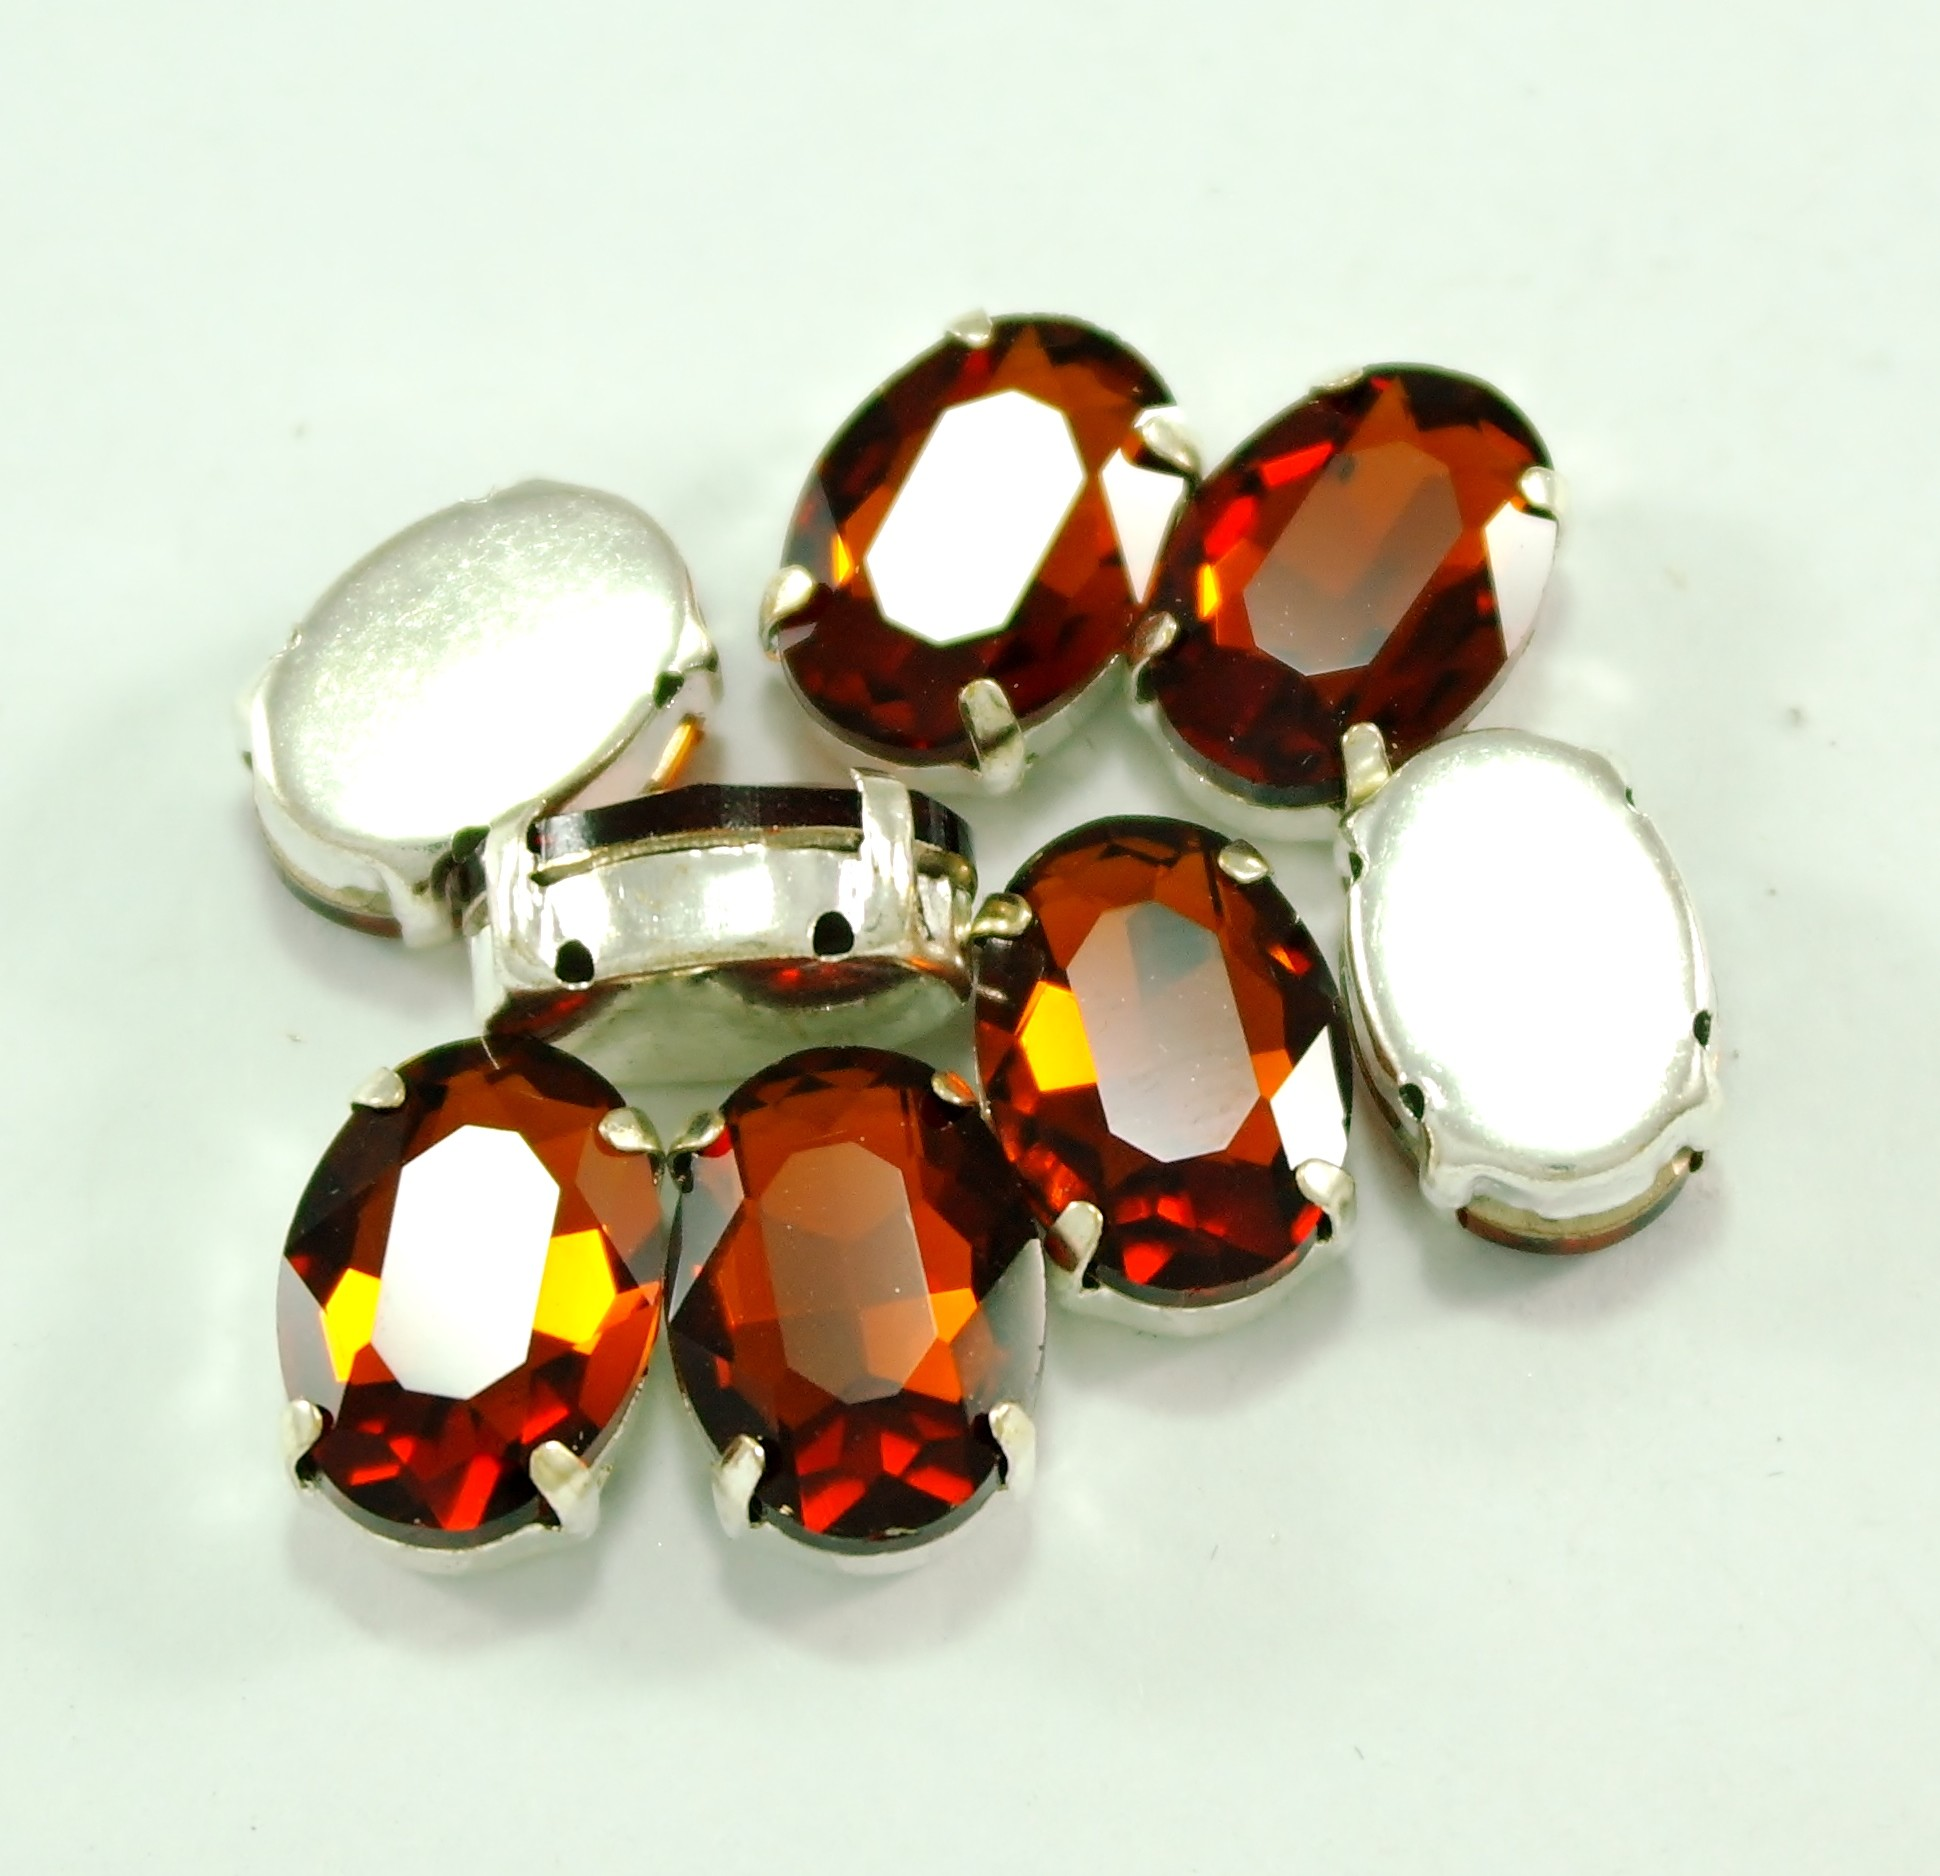 GLASS BEADS - SMOKED TOPAZ OVAL (O12)